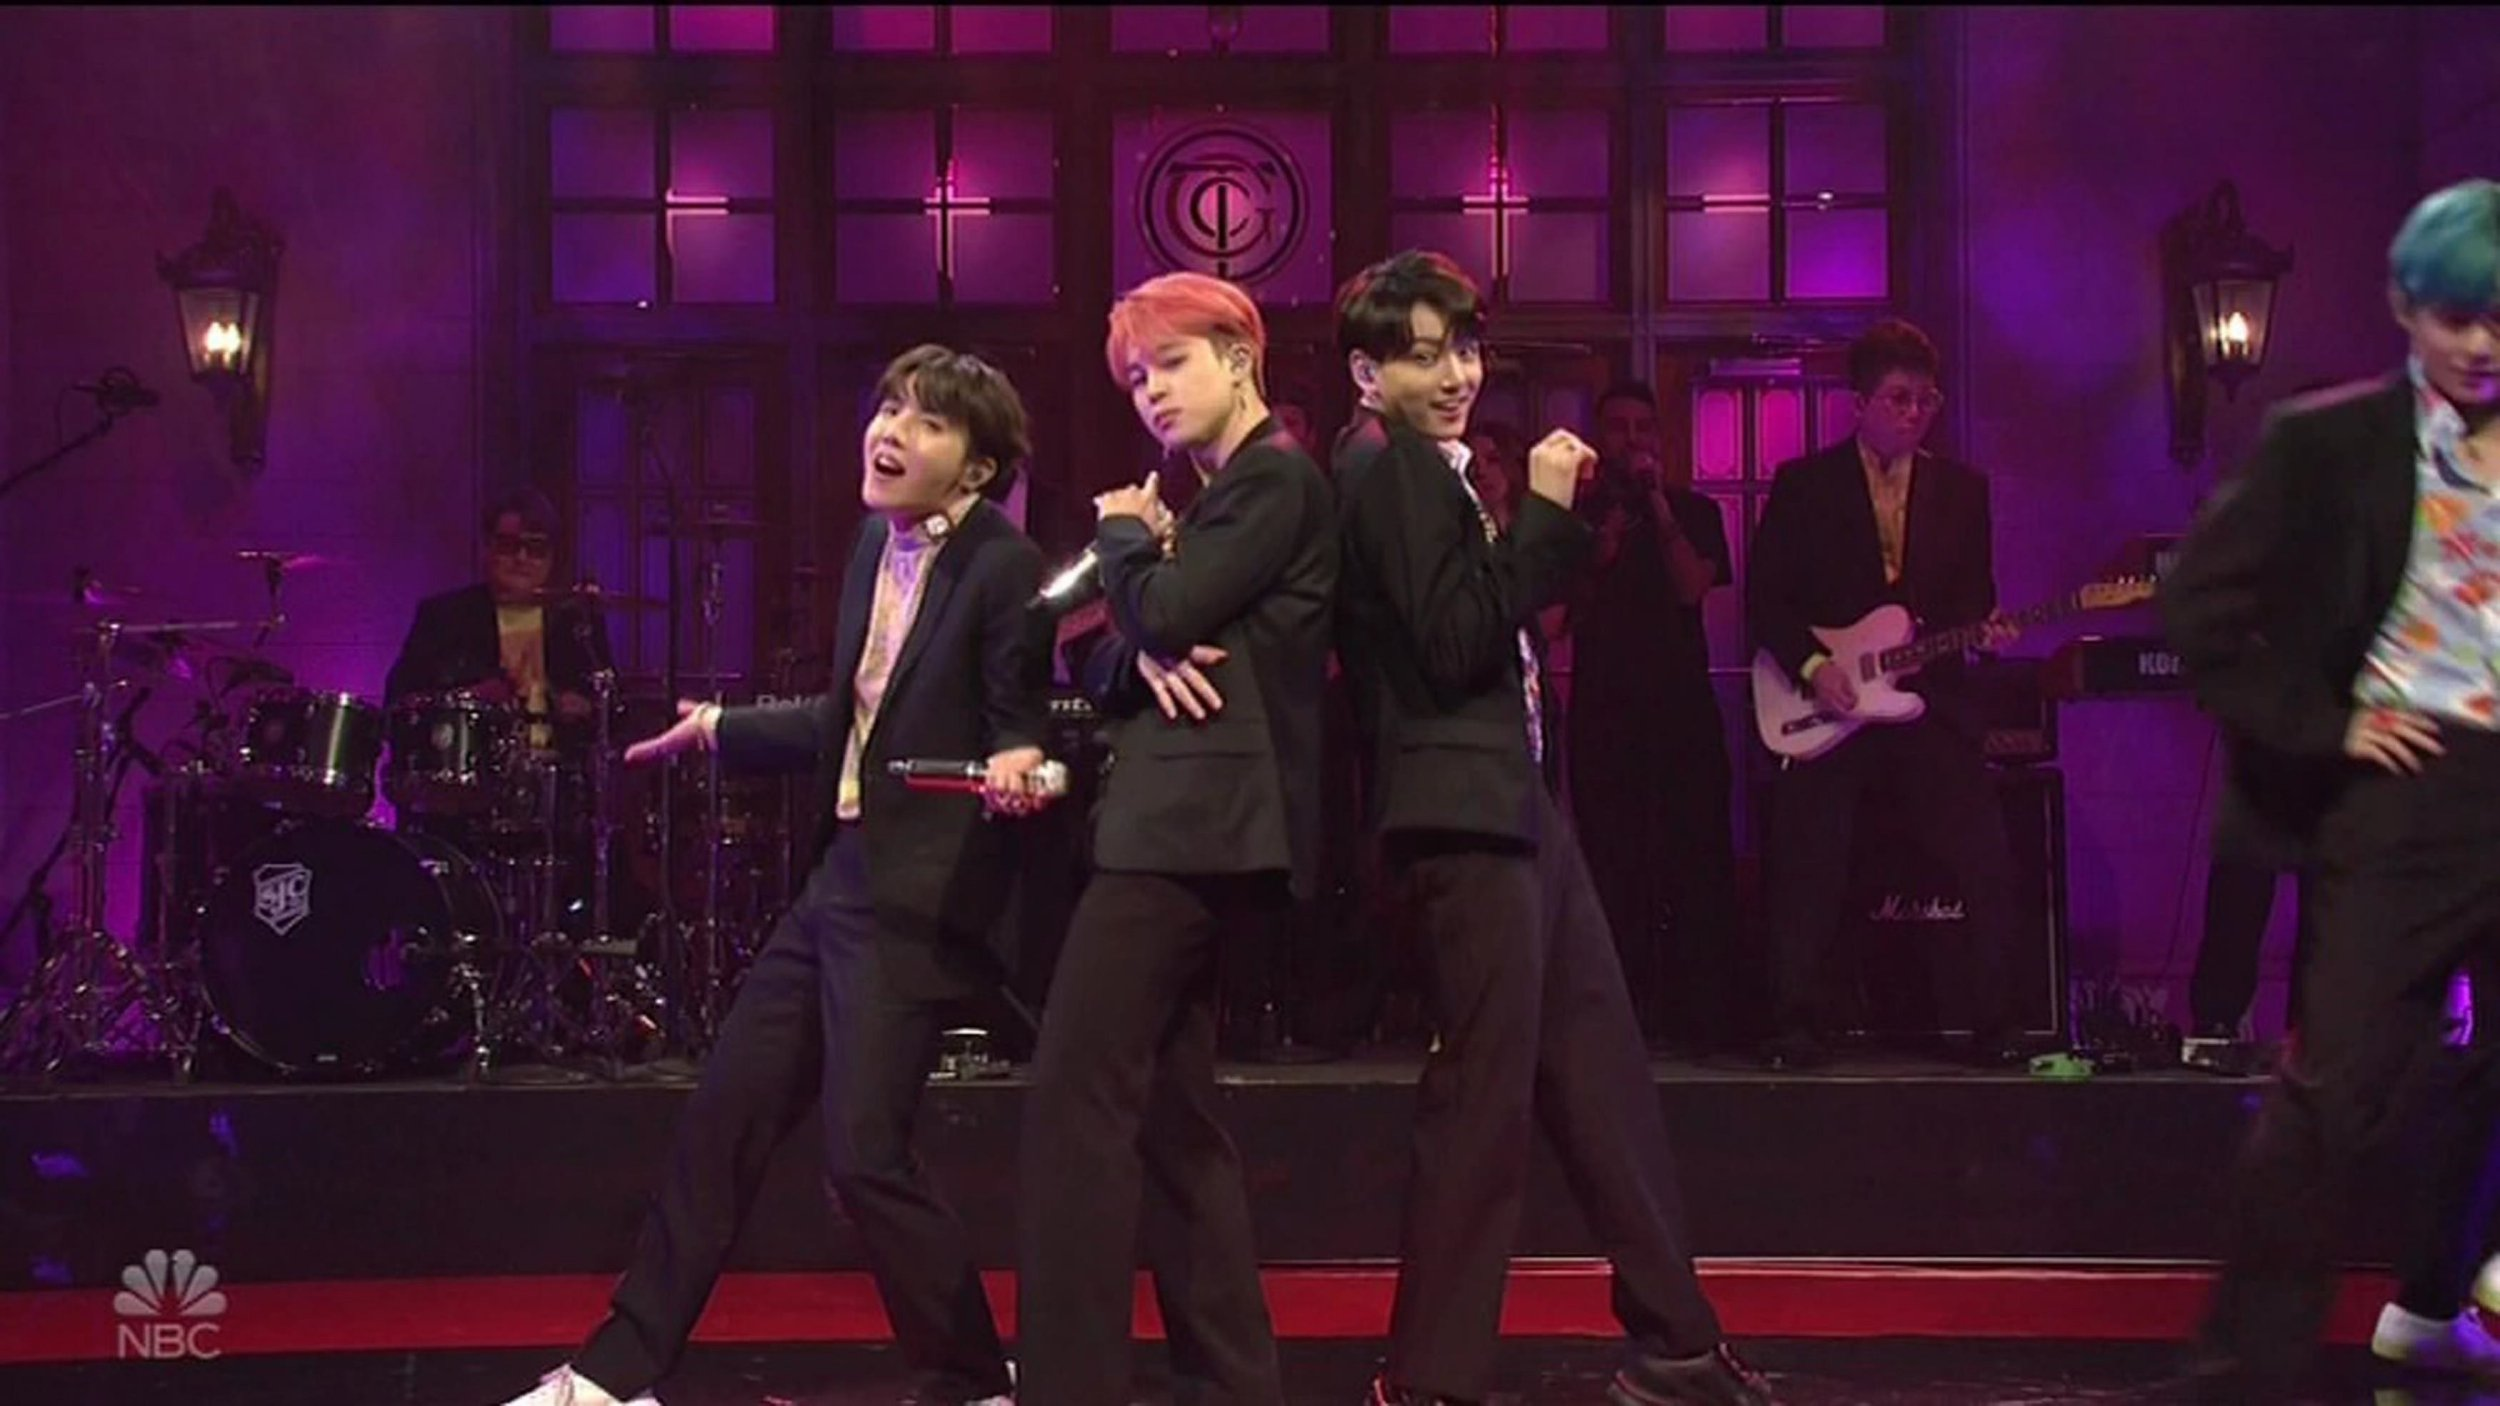 BTS slay SNL with performances of Boy With Luv and Mic Drop and it was perfection